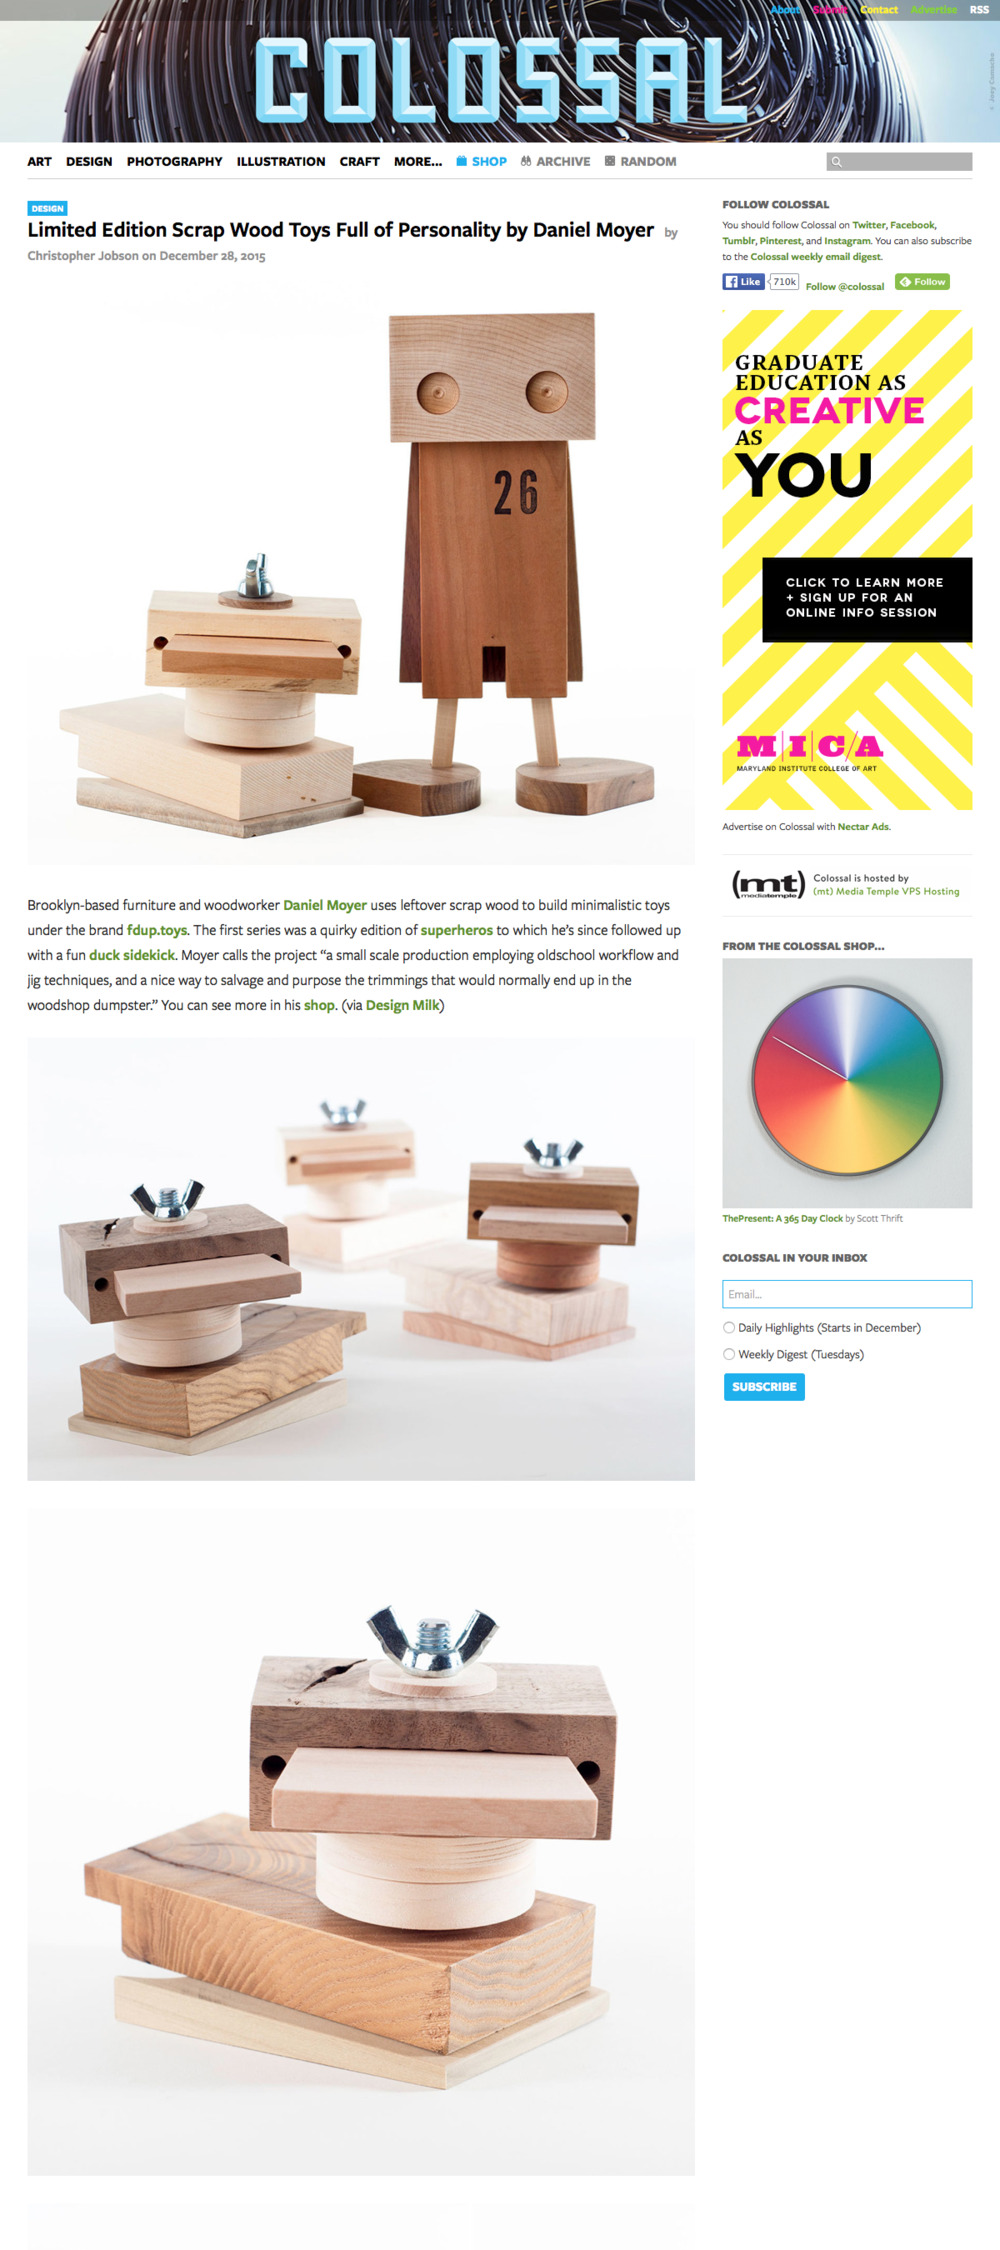 thisiscolossal.com-2015-12-limited-edition-scrapwood-toys-full-of-personality-by-daniel-moyer-(20151228).png